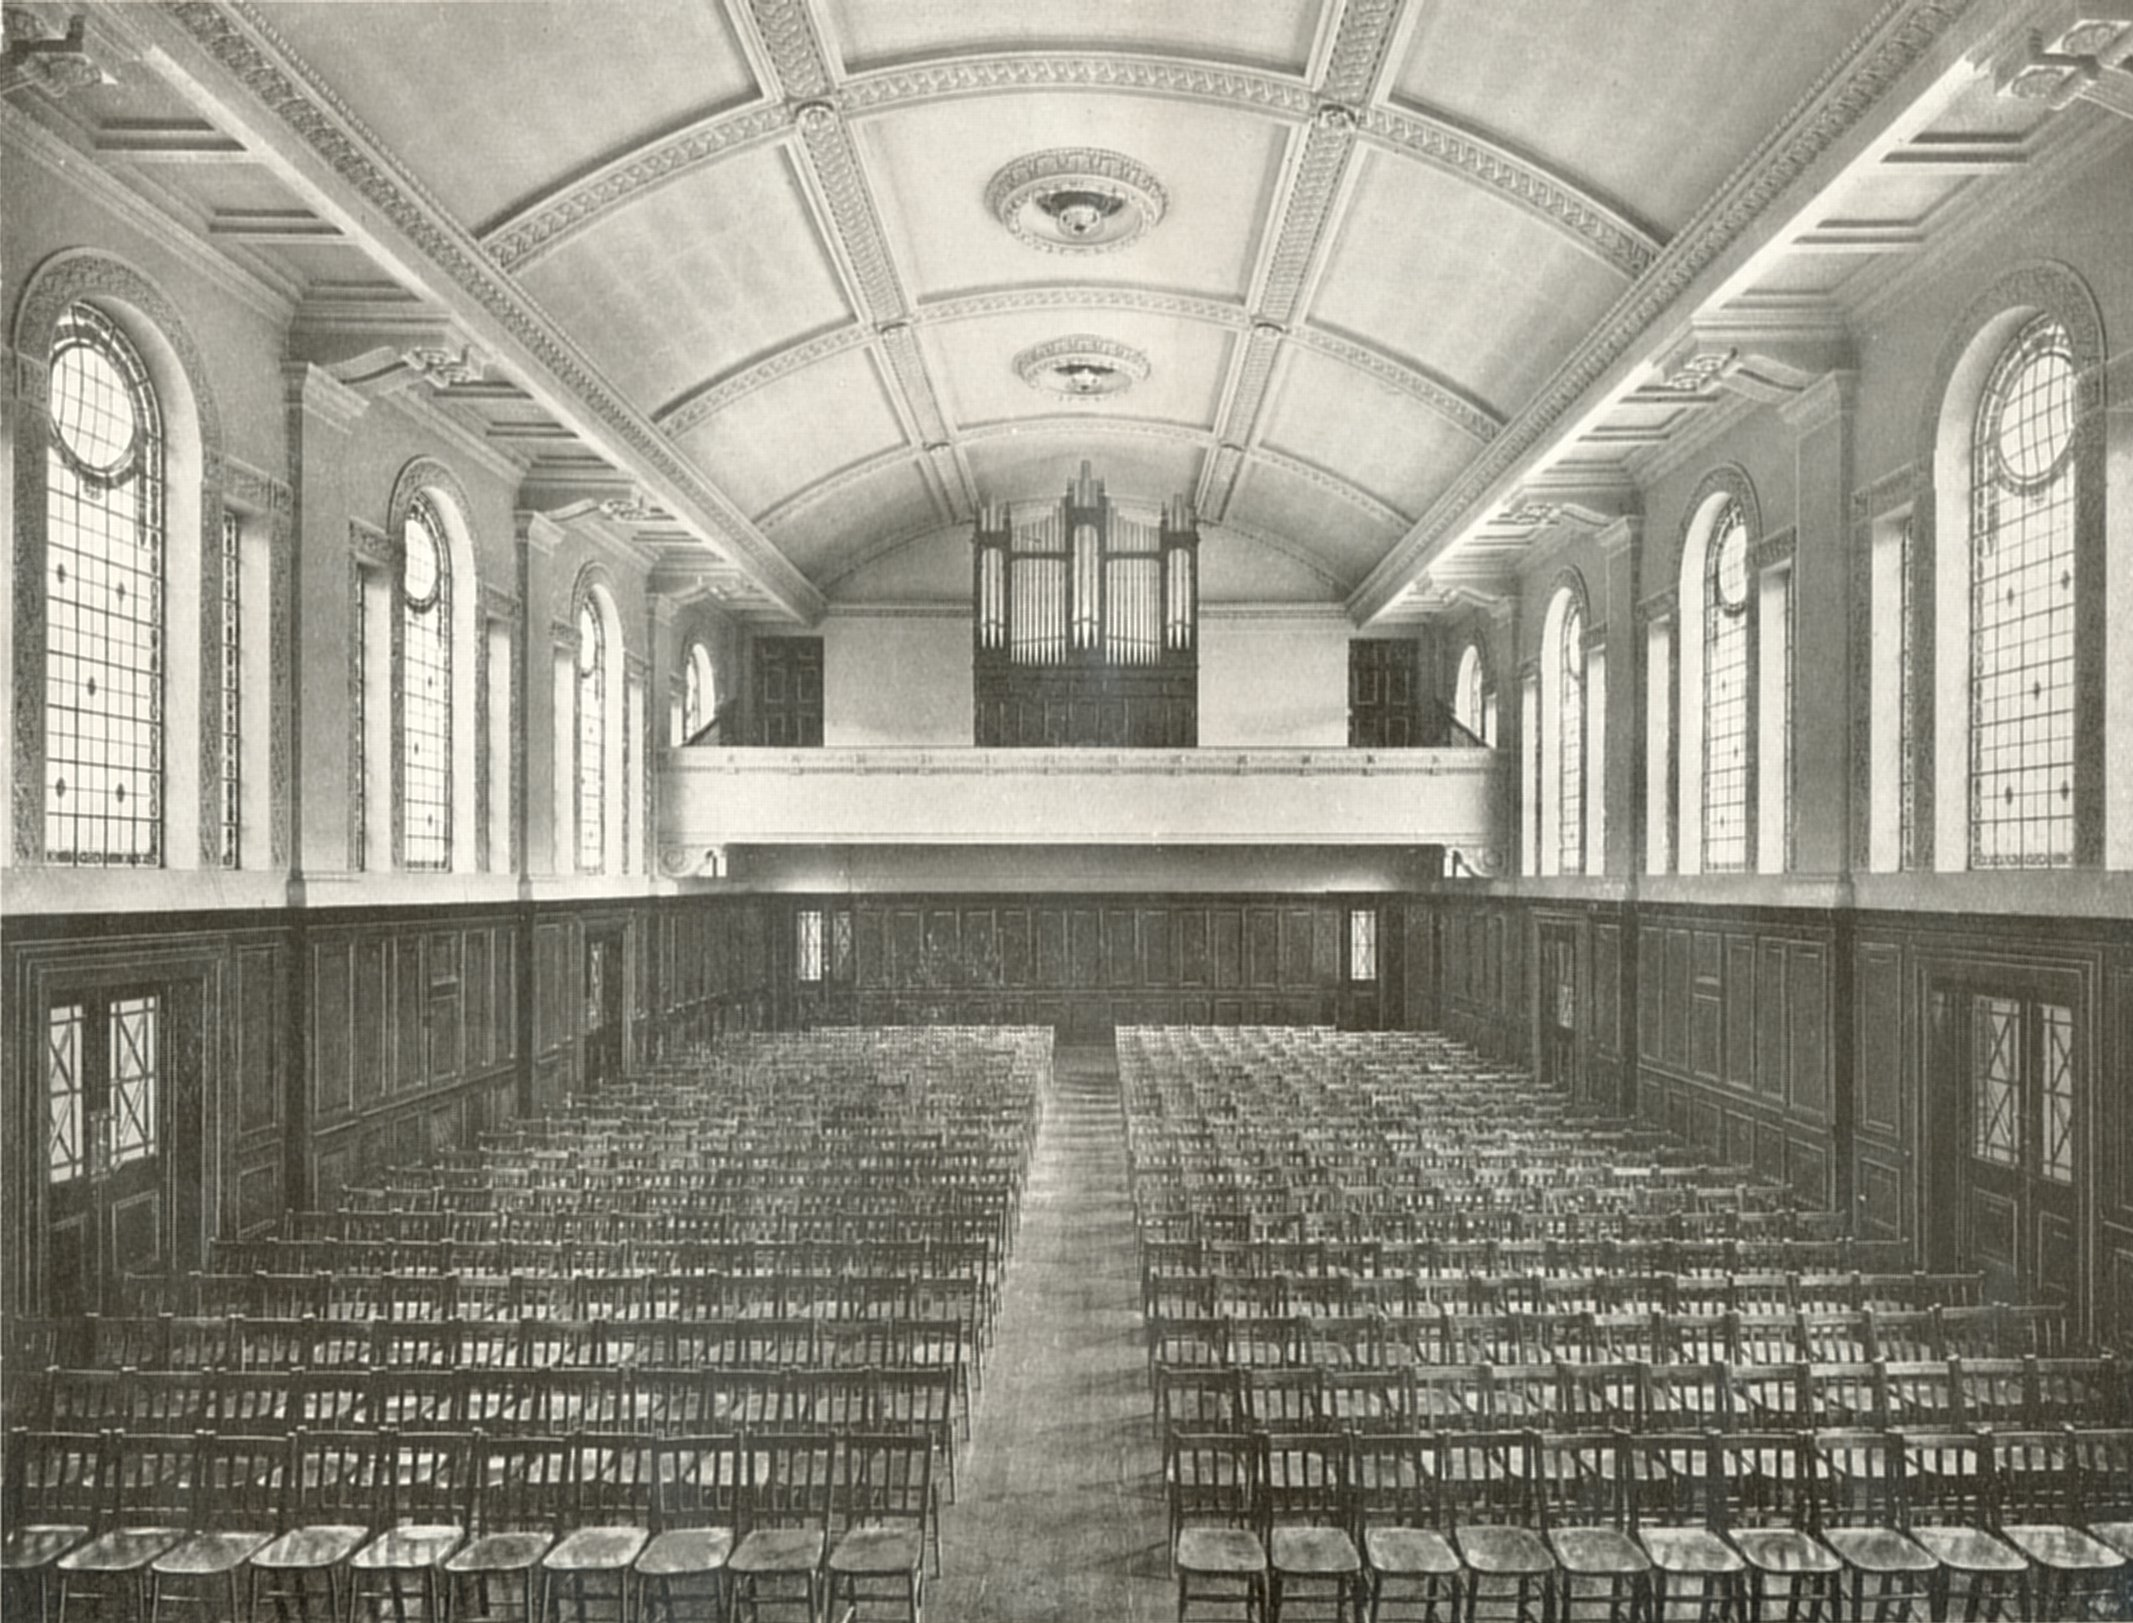 The Great Hall, circa 1913